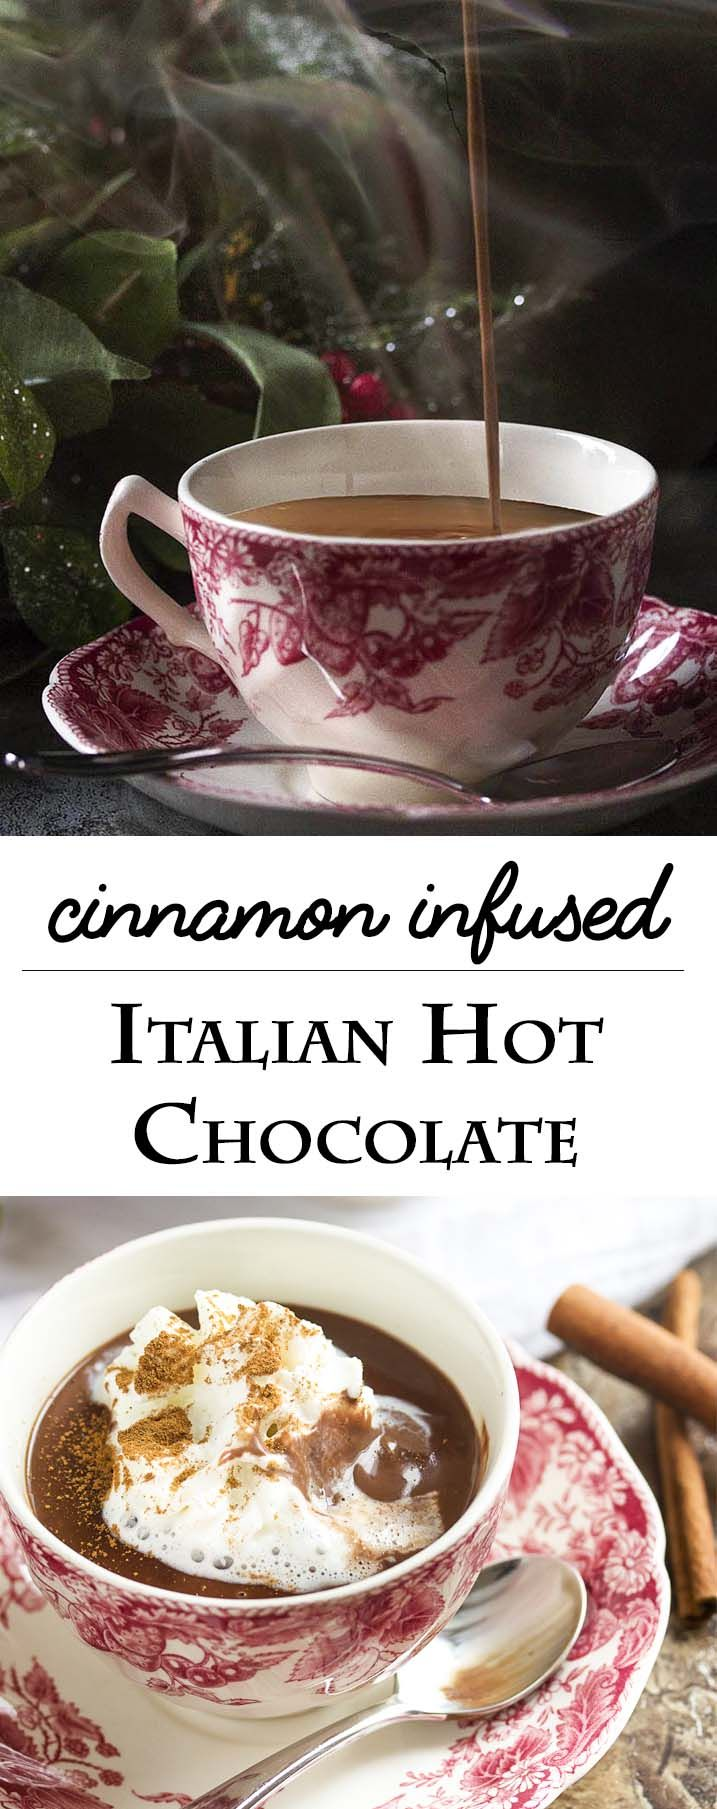 Cinnamon infused thick Italian hot chocolate is a not too sweet take on hot cocoa which is rich and decadent and intensely chocolaty. It's like drinkable bittersweet pudding! | justalittlebitofbacon.com